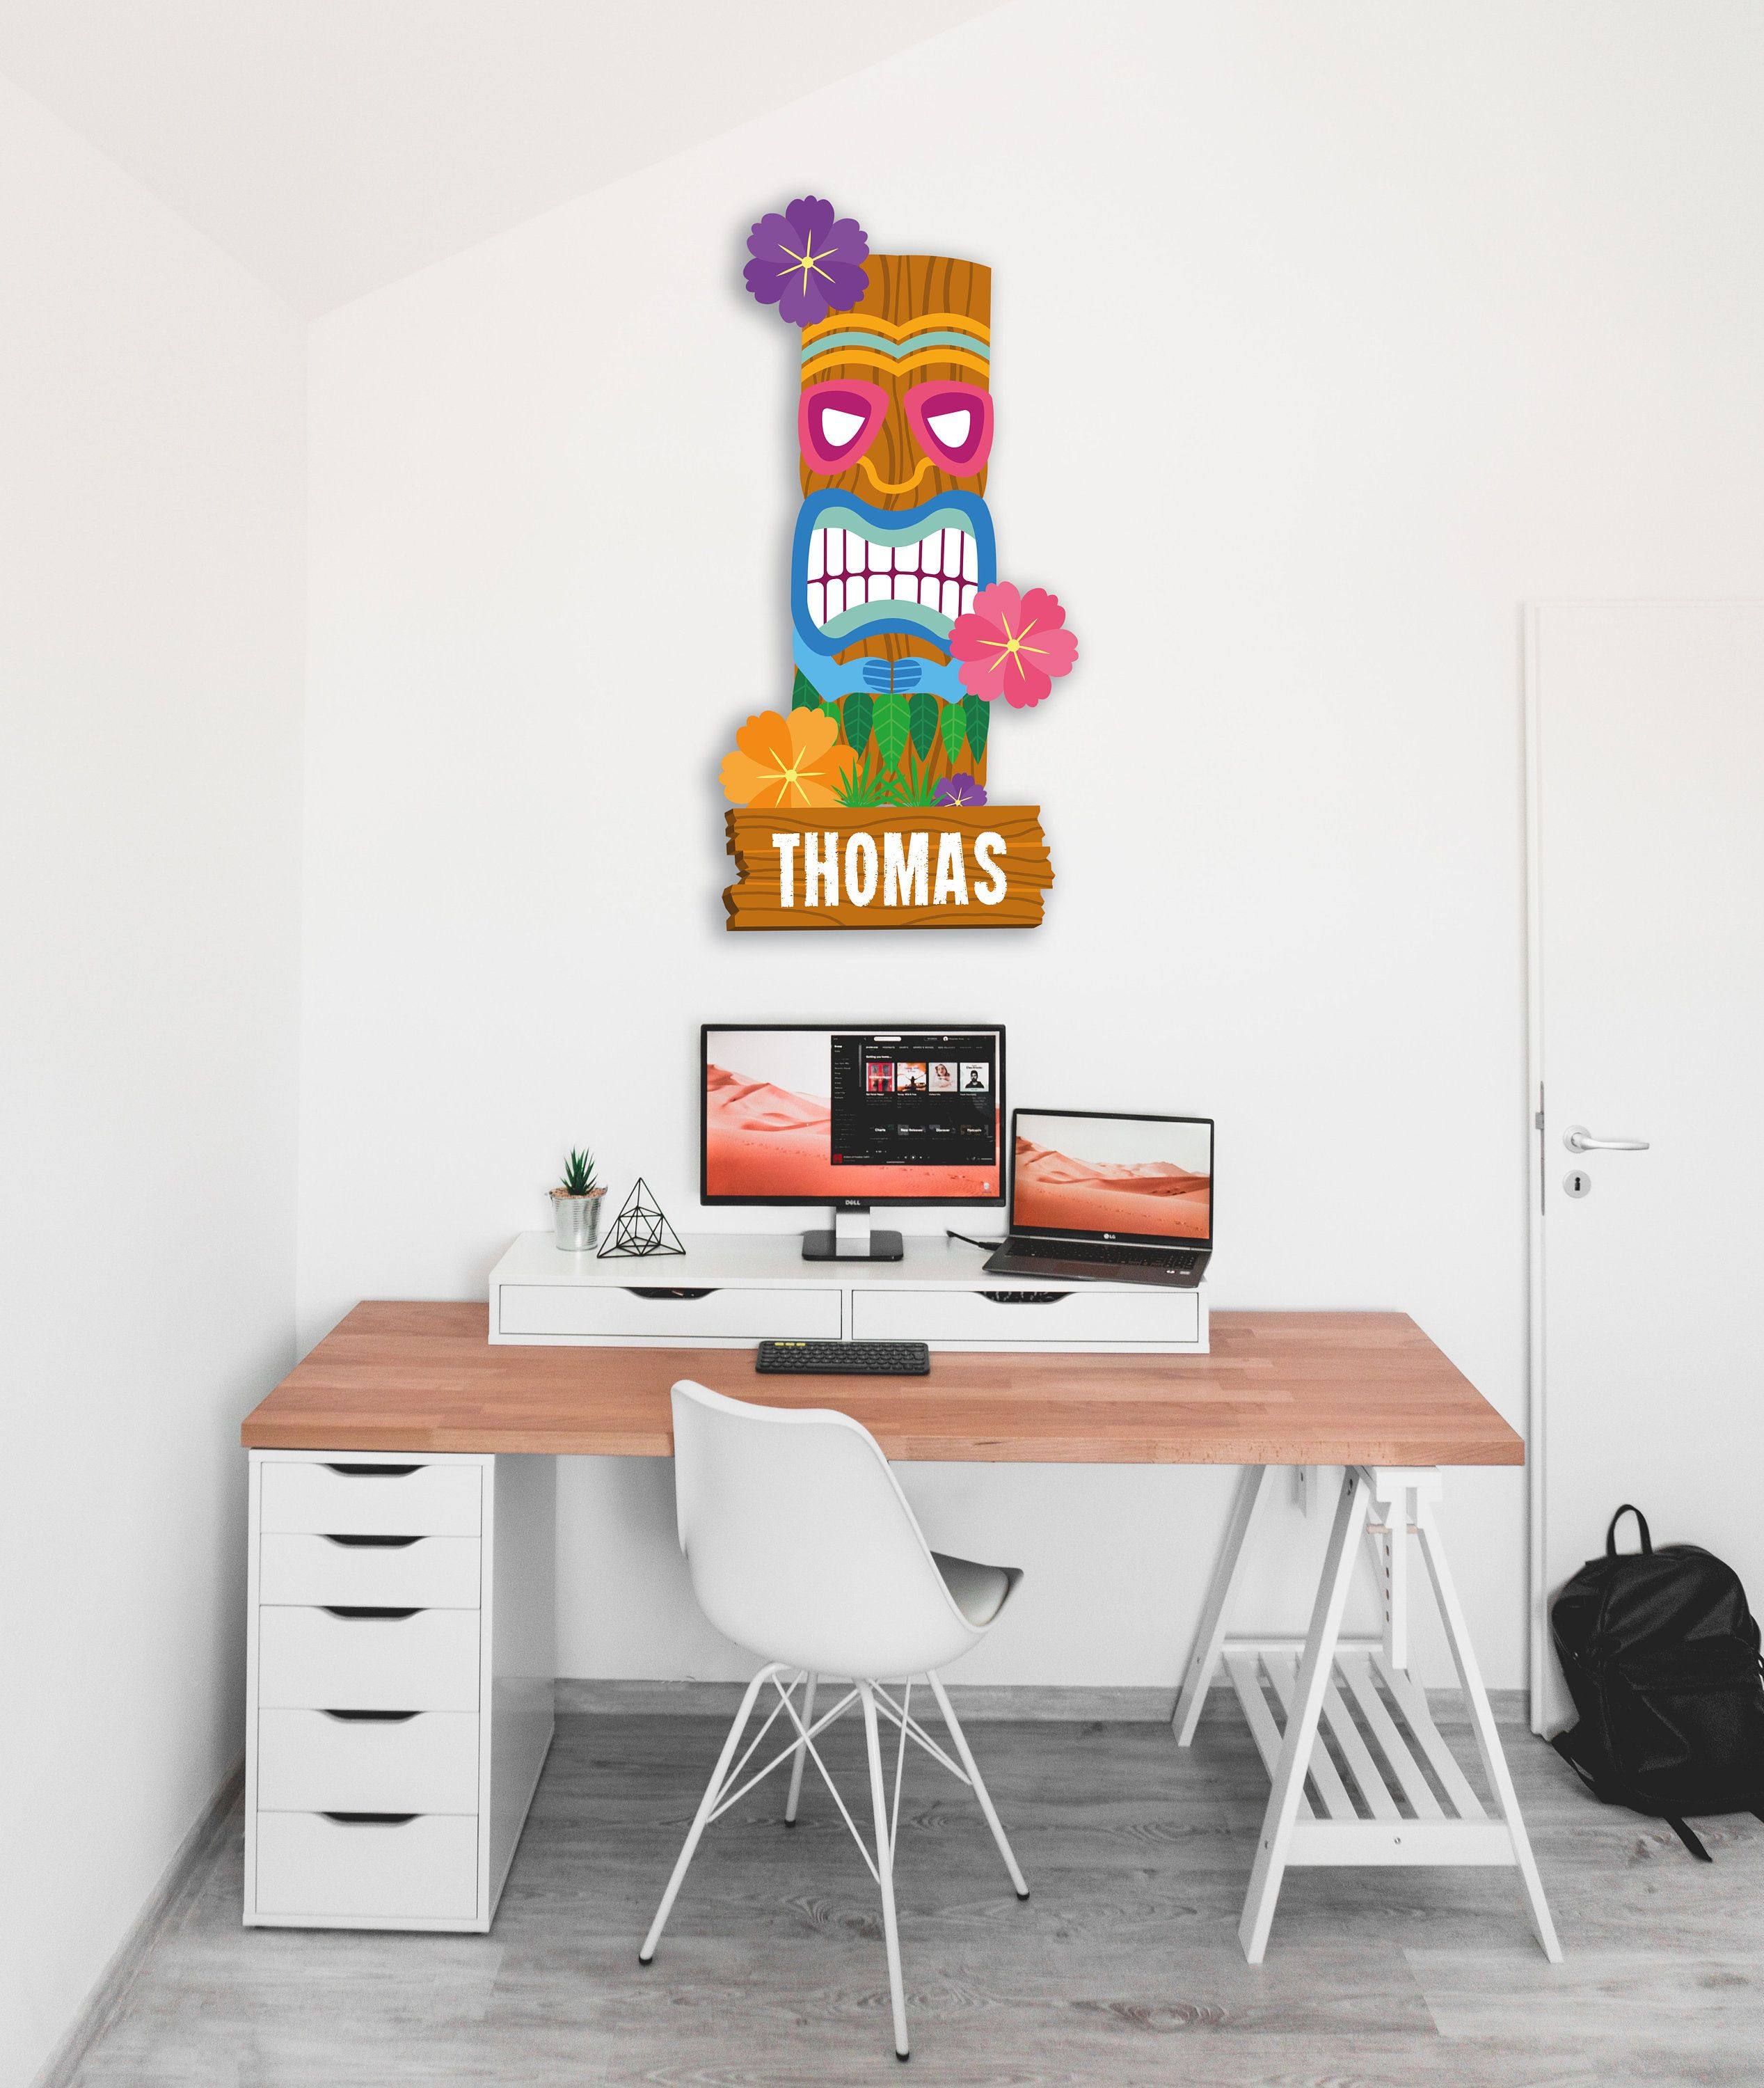 Totem Style Hawaii 80 X 50 Cm A Personnaliser Totem Support Polystyrene Personnalise